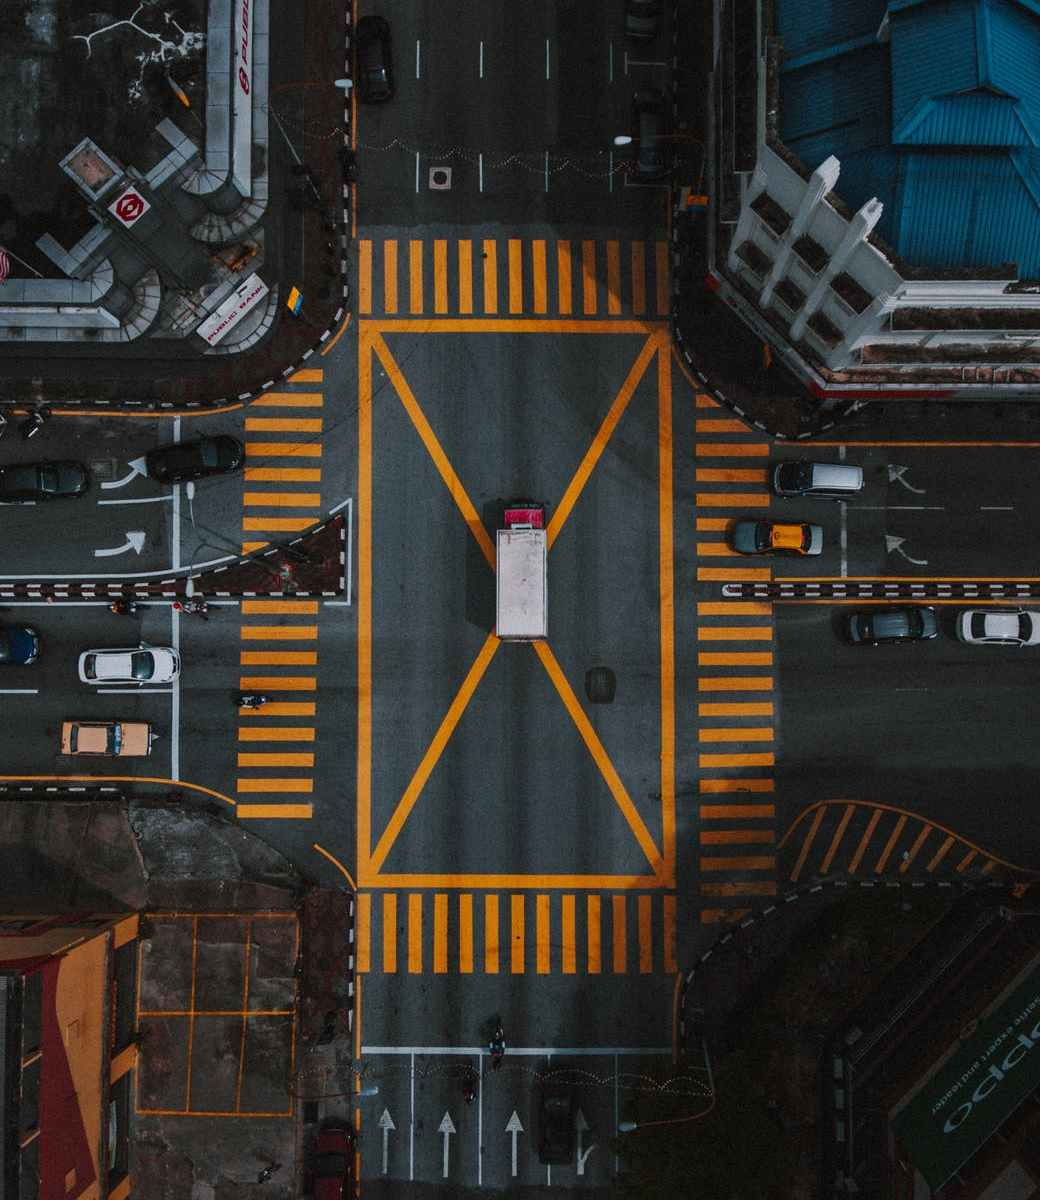 aerial photography of cars on the road. A truck in the middle of a big yellow X above a busy intersection.